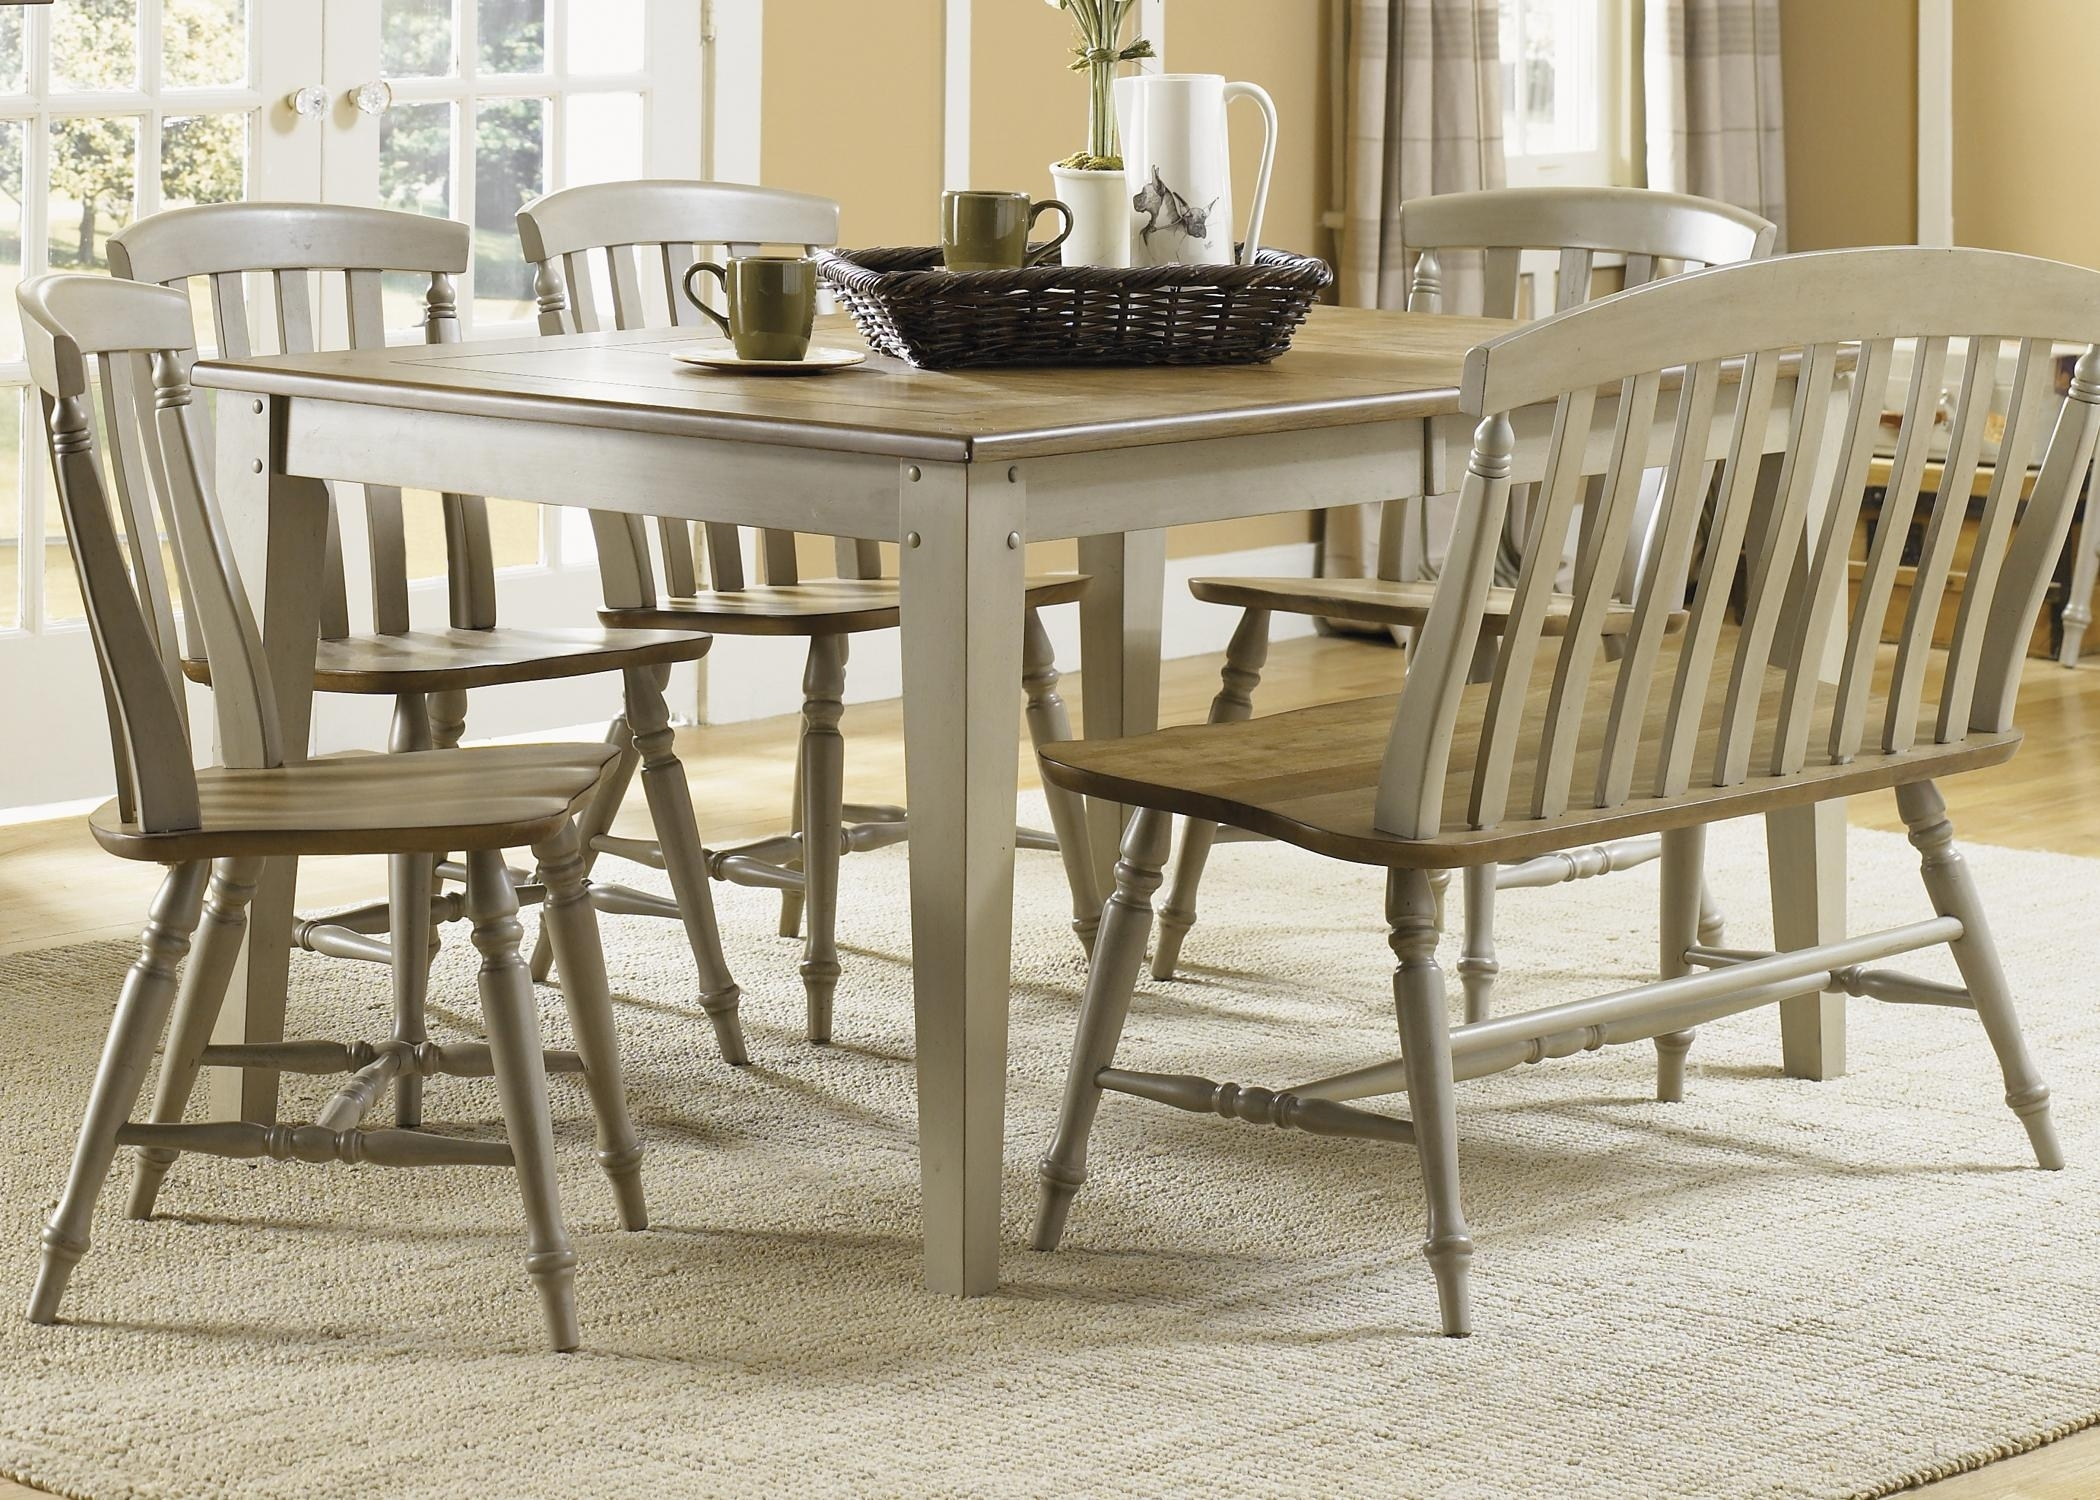 Dinning Room. 6 Piece Dining Room Sets – Home Design 2019 Intended For Best And Newest Patterson 6 Piece Dining Sets (Photo 12 of 20)